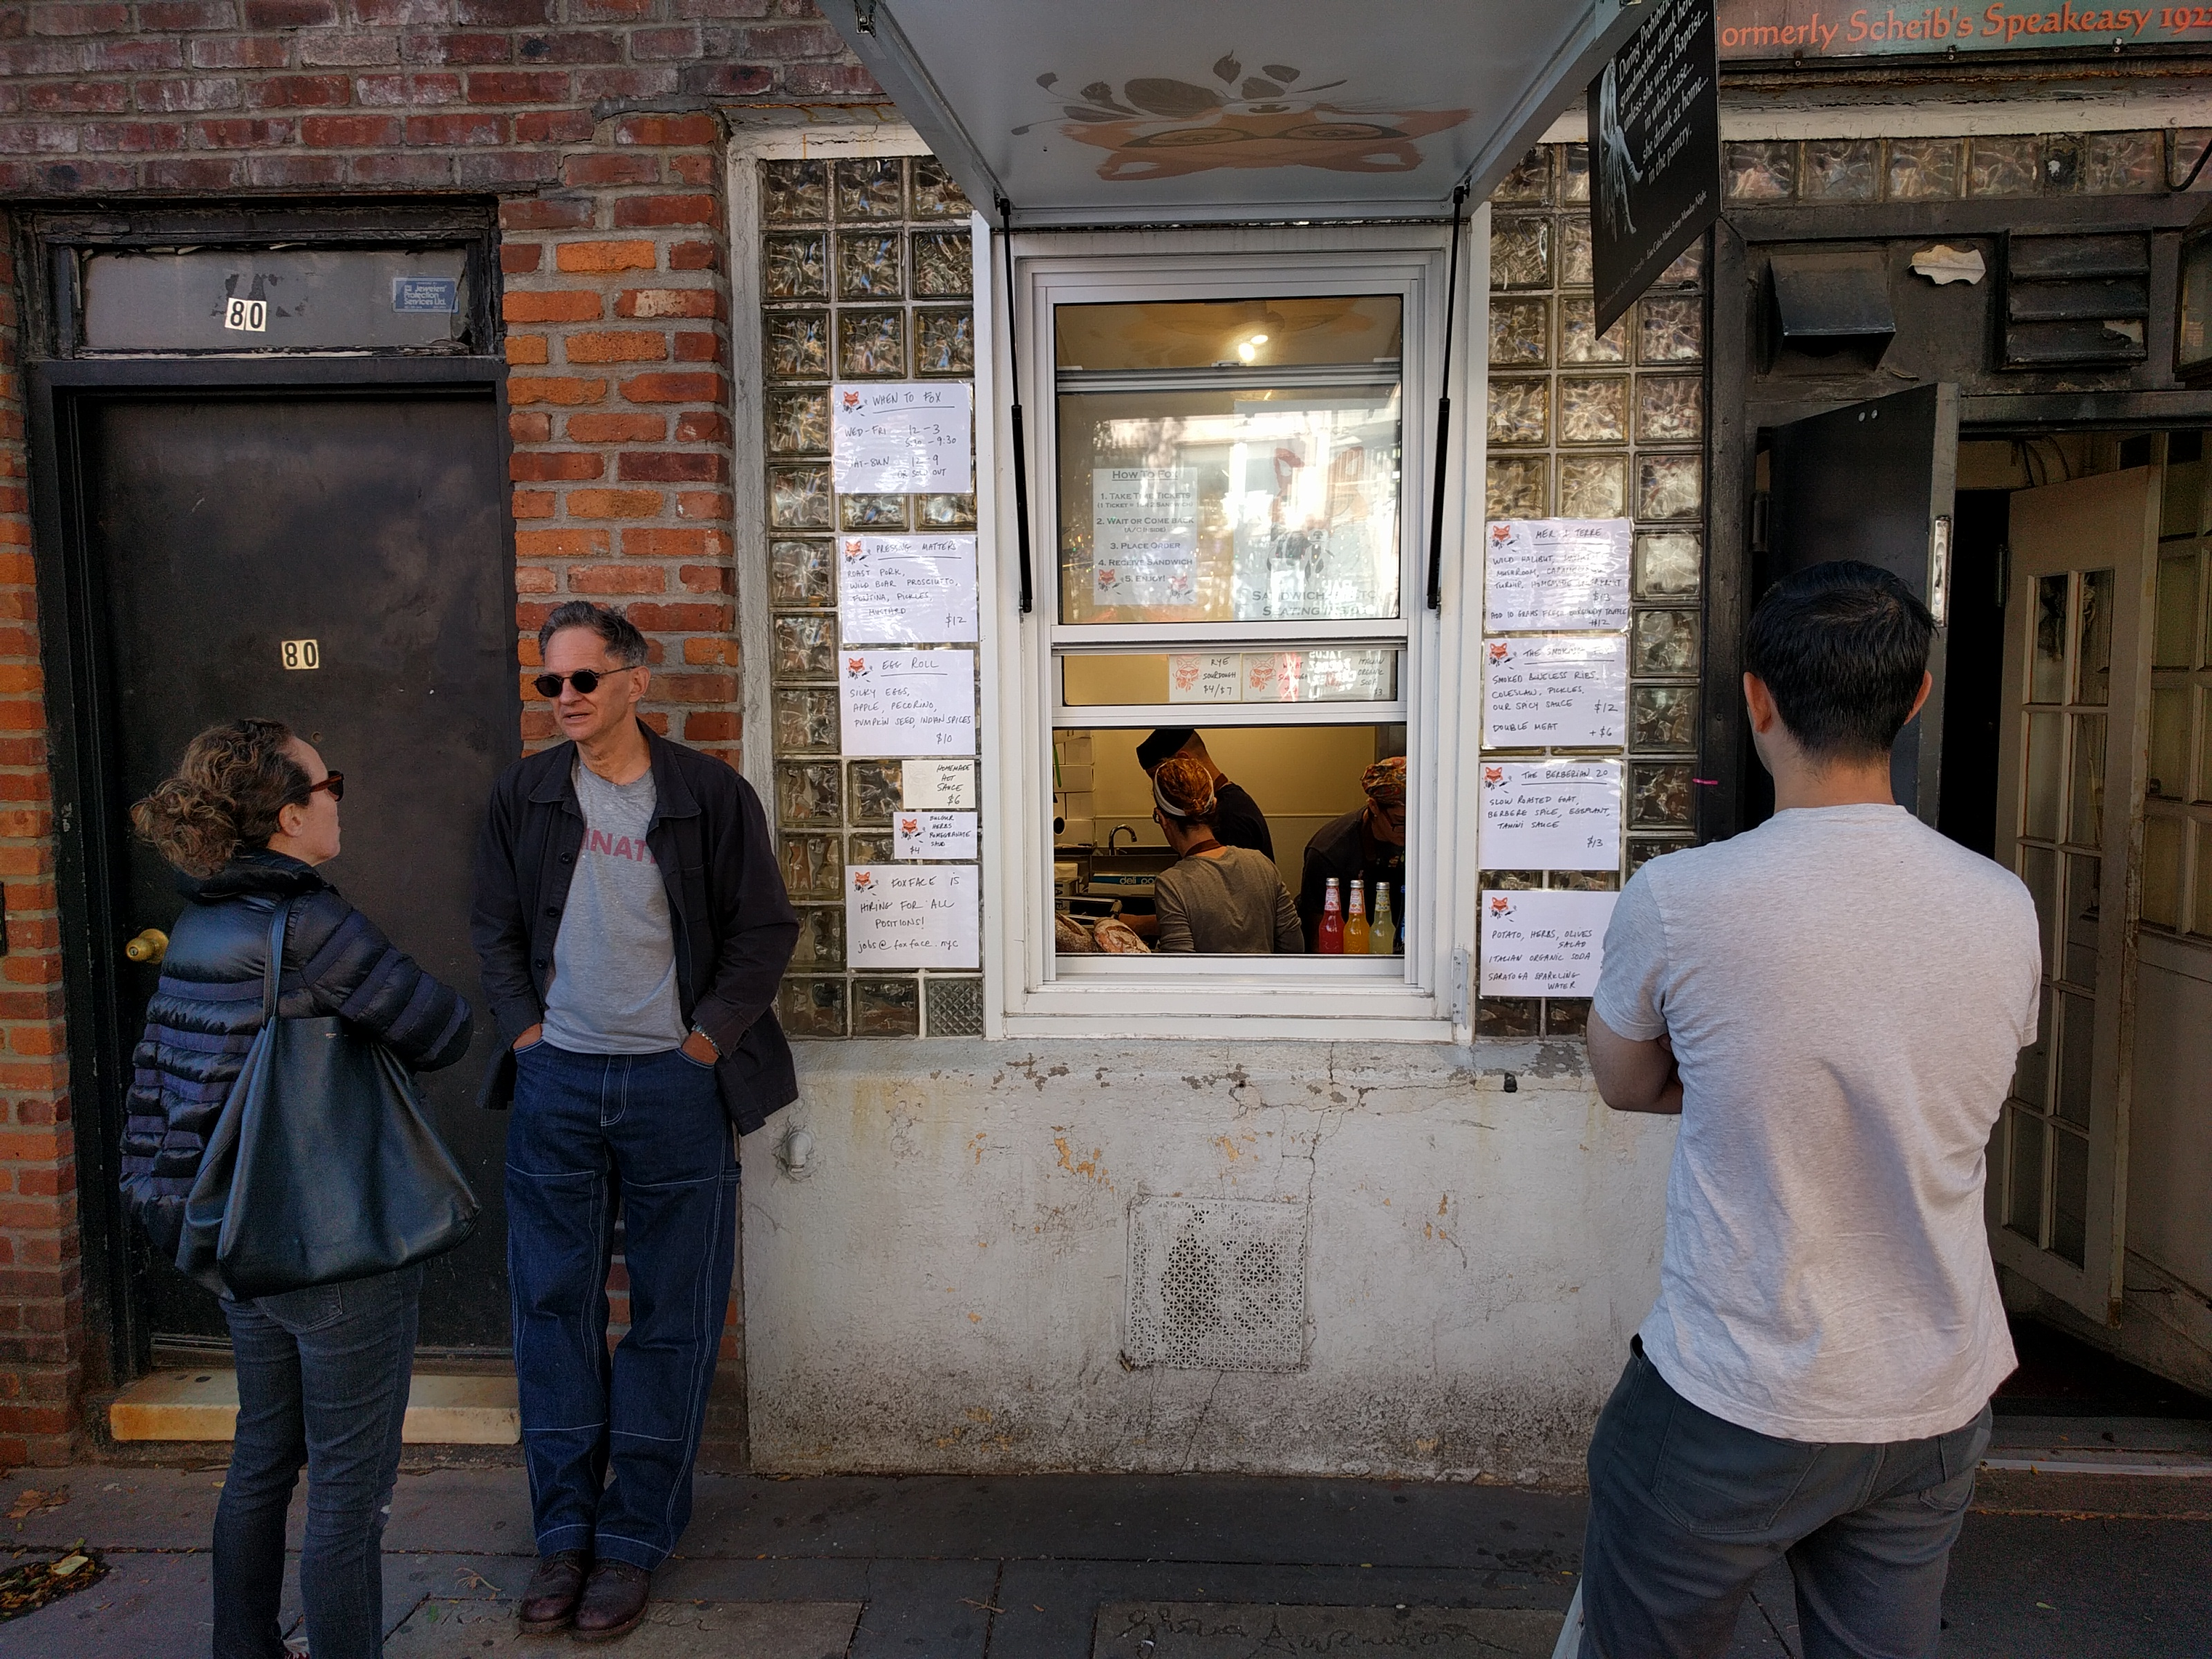 A brick storefront with a window that looks into a kitchen in which cooks can be seen, and a few customer mill around outside...